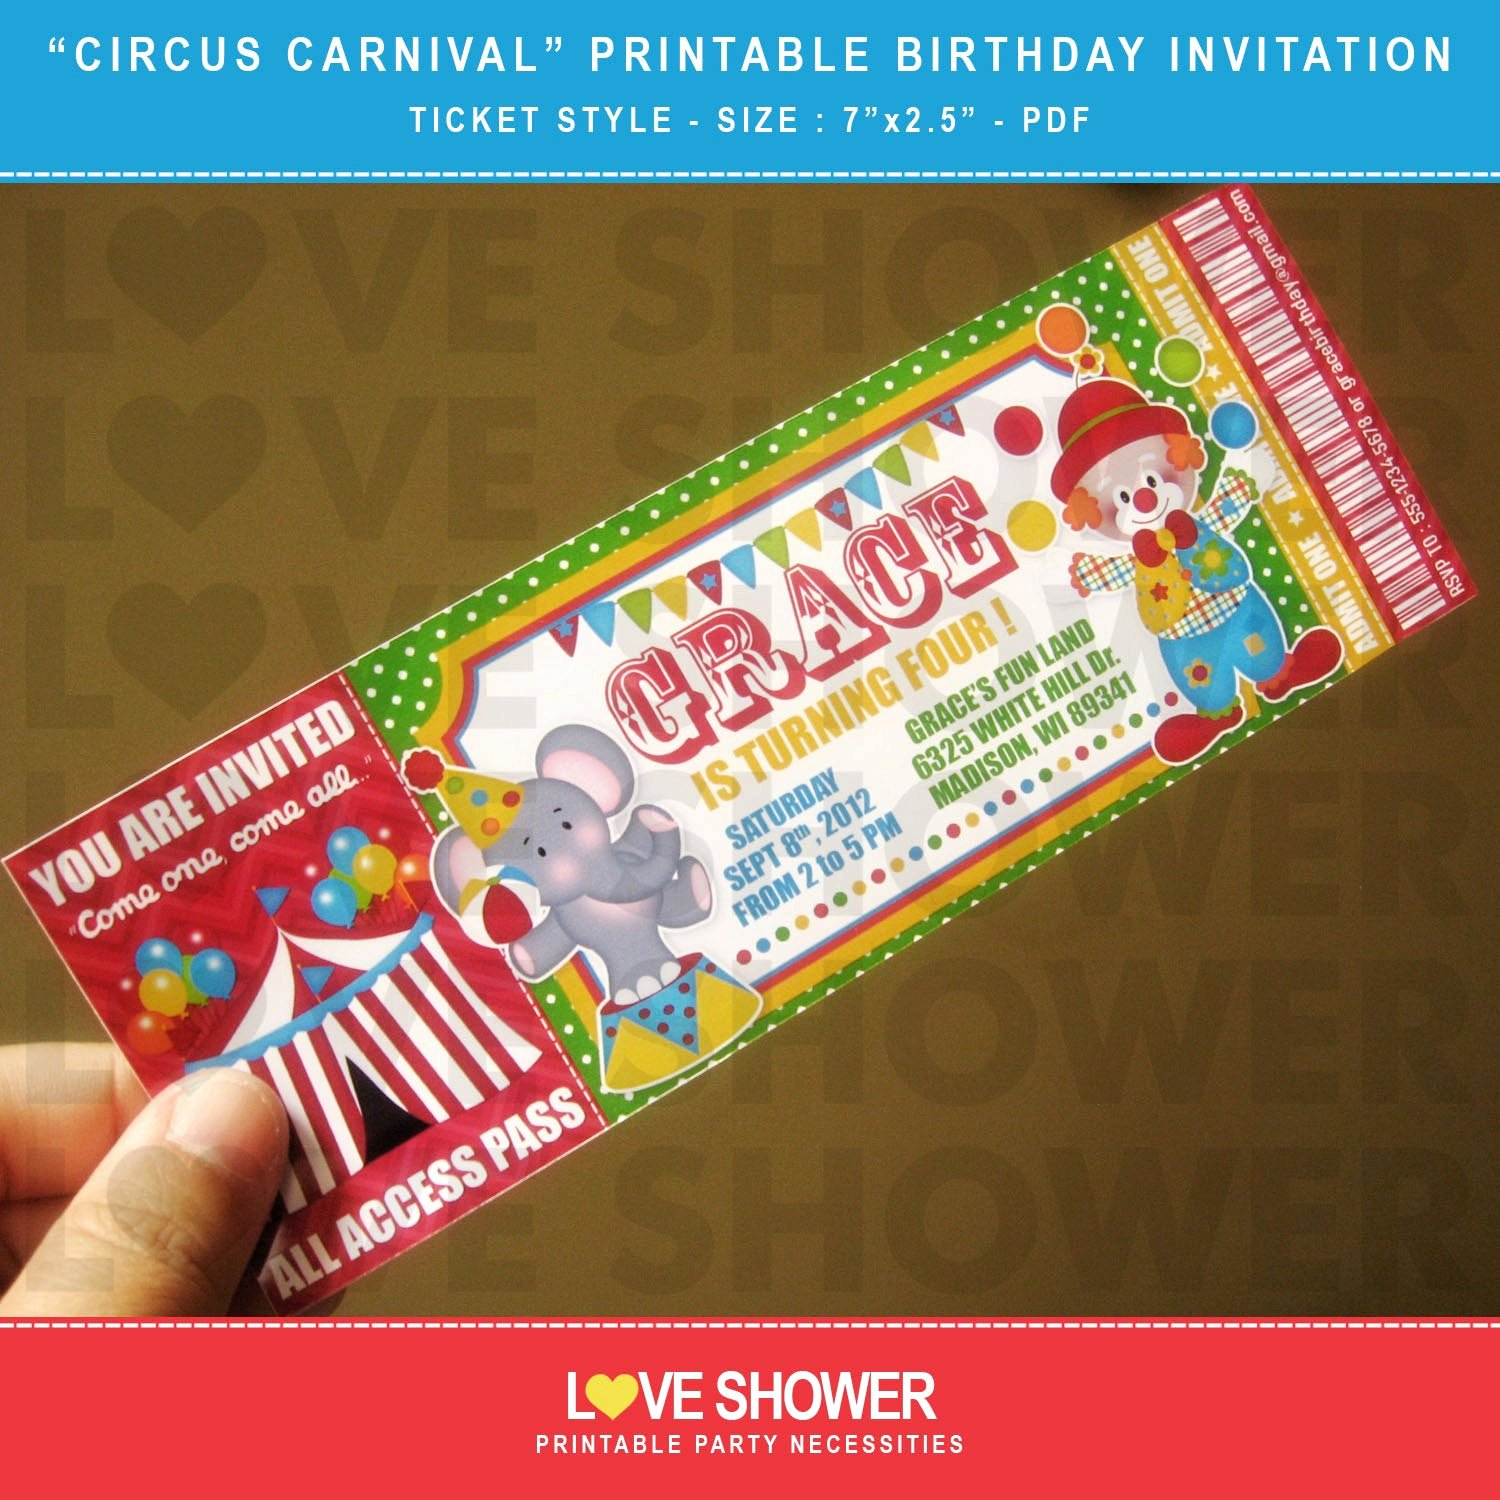 Carnival Ticket Invitation Template Free Lovely Circus Carnival Printable Birthday Invitation Ticket Style